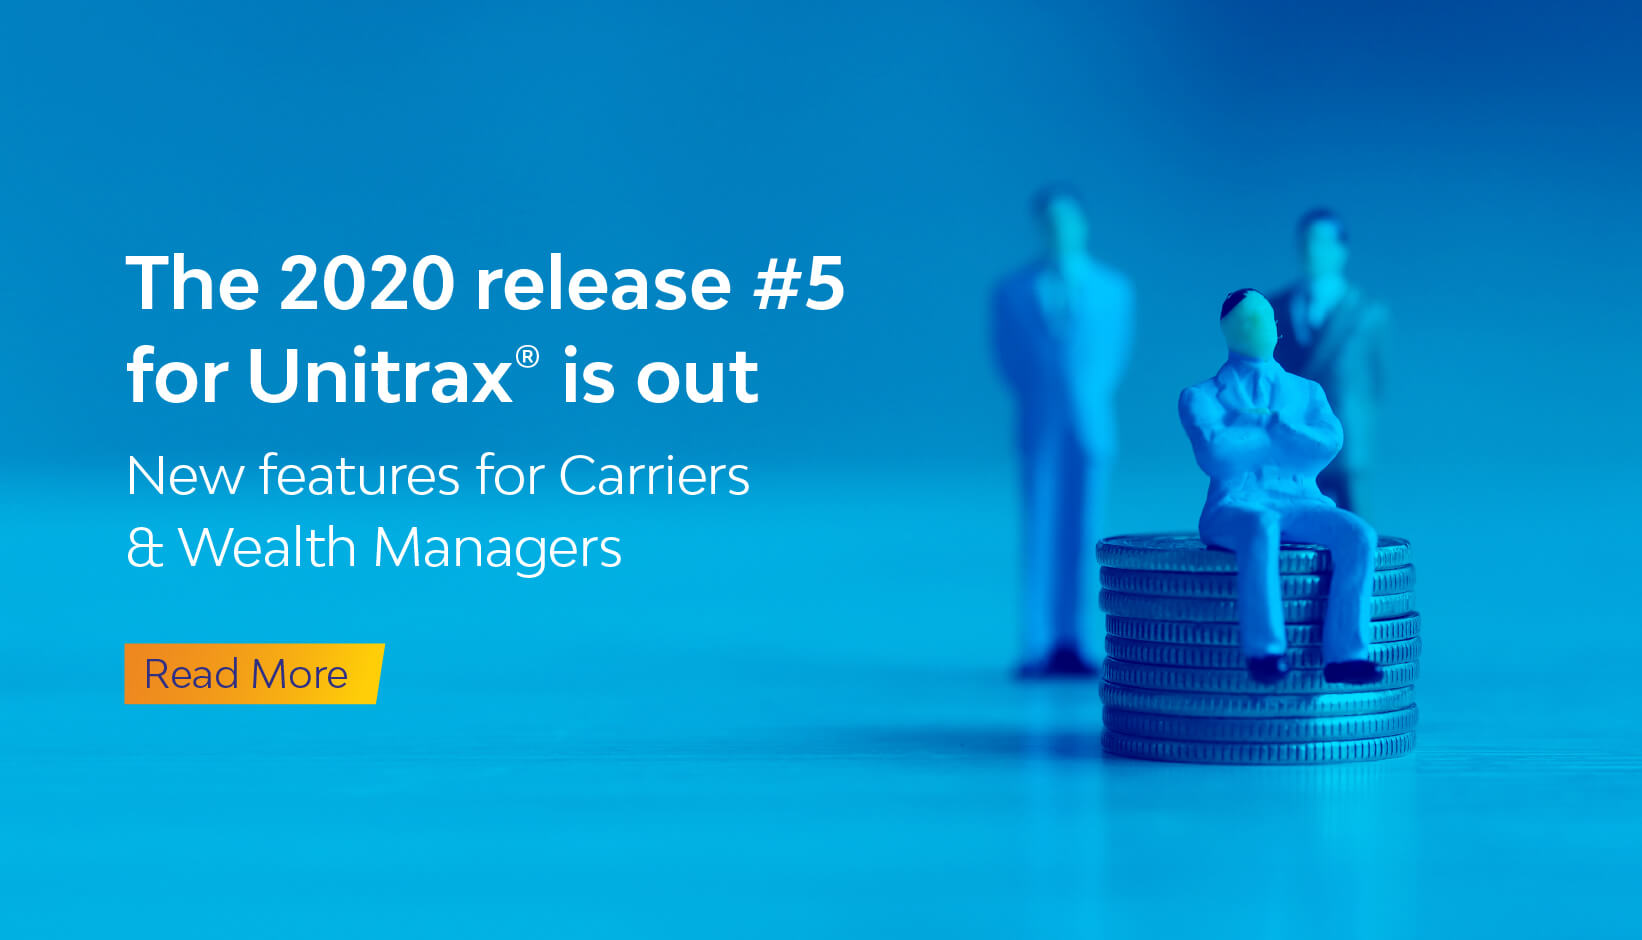 The 2020 release #5 for Unitrax® is out